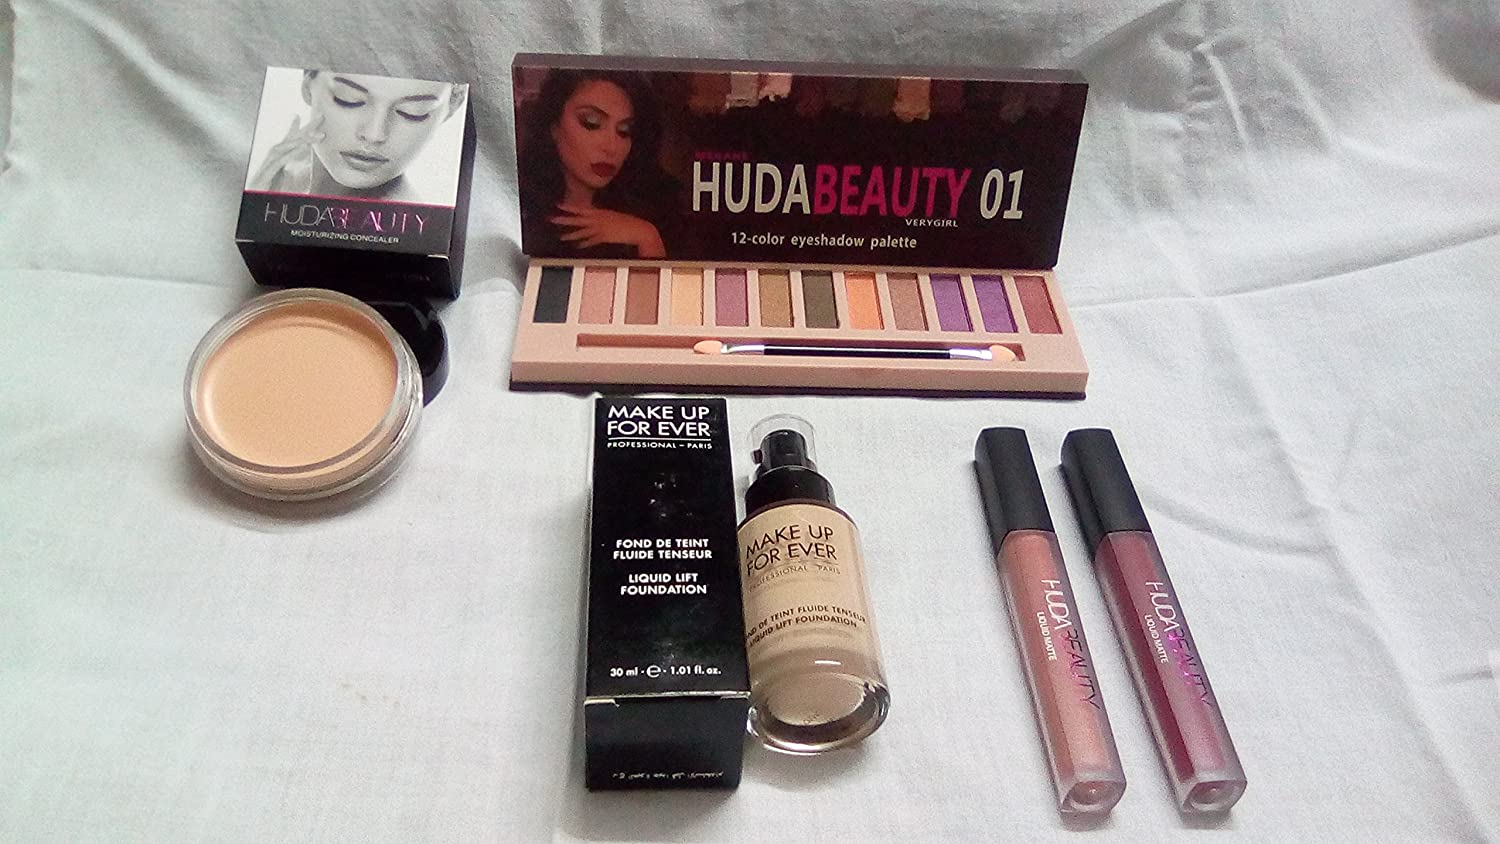 Huda Beauty Makeup Combo Kit Eyeshadow Palette Foundation Two Pieces